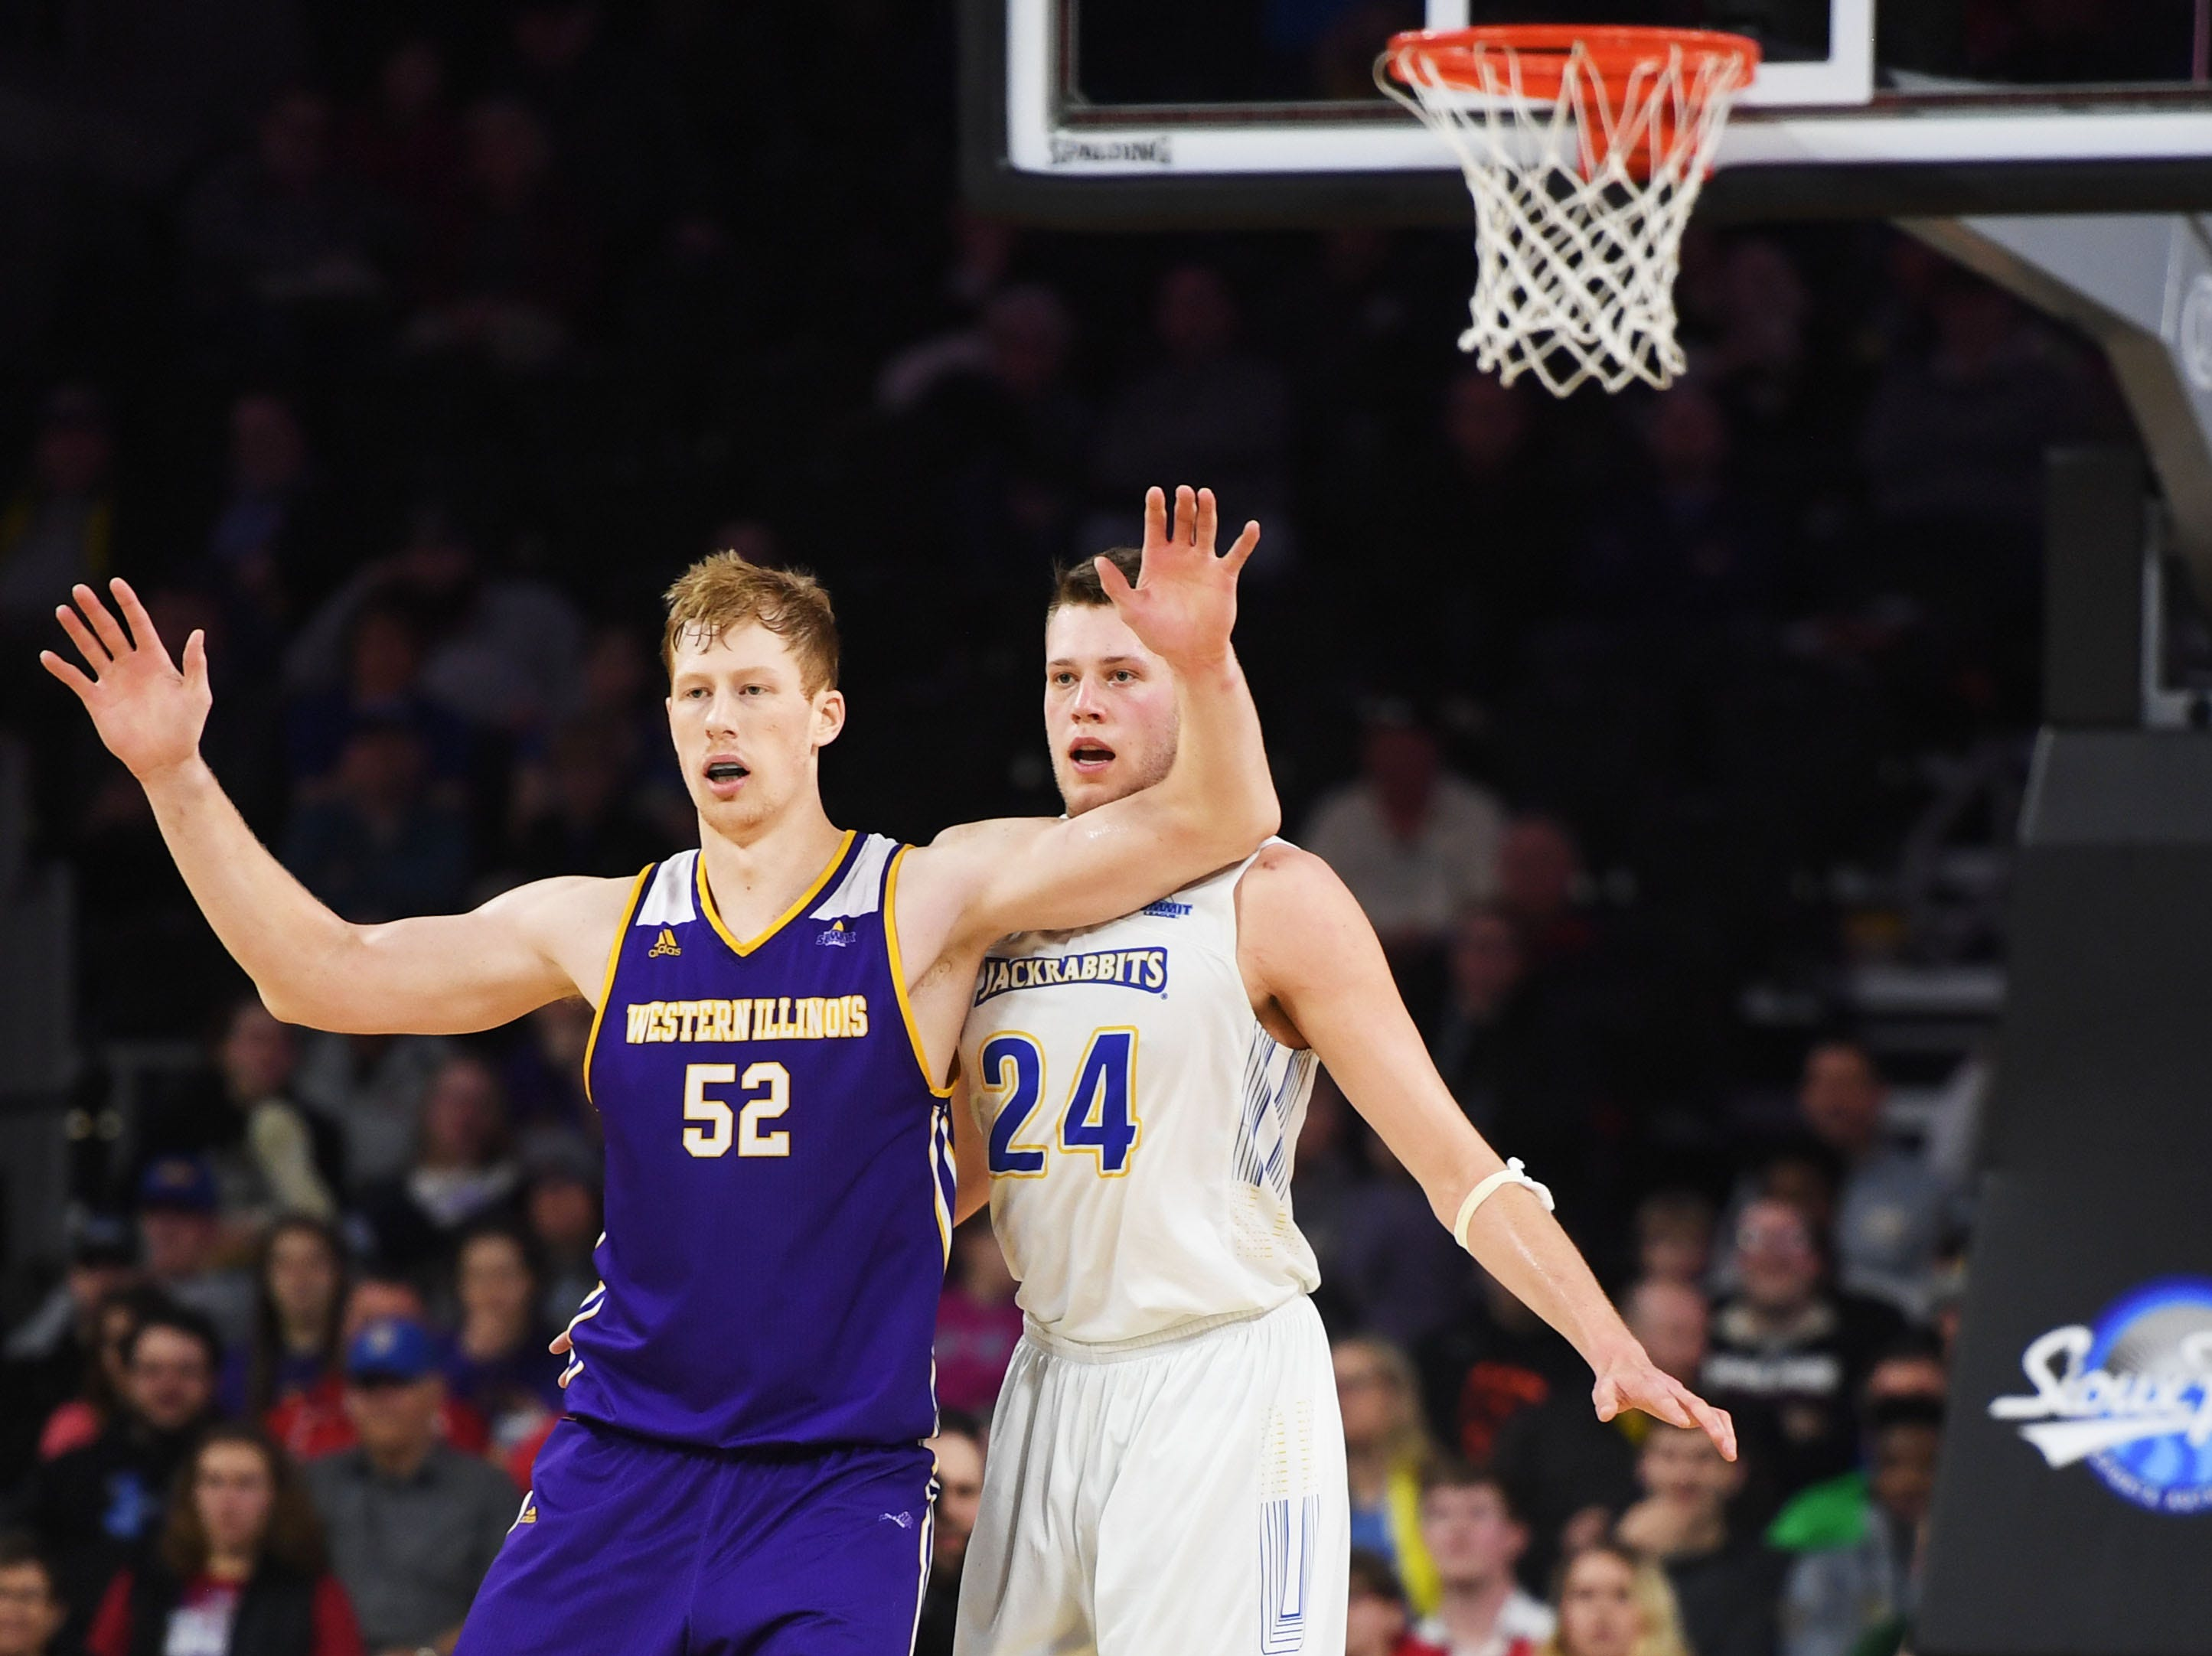 SDSU's Mike Daum and Western Illinois' Brandon Gilbeck during the game Saturday, March 9, in the Summit League tournament at the Denny Sanford Premier Center in Sioux Falls.